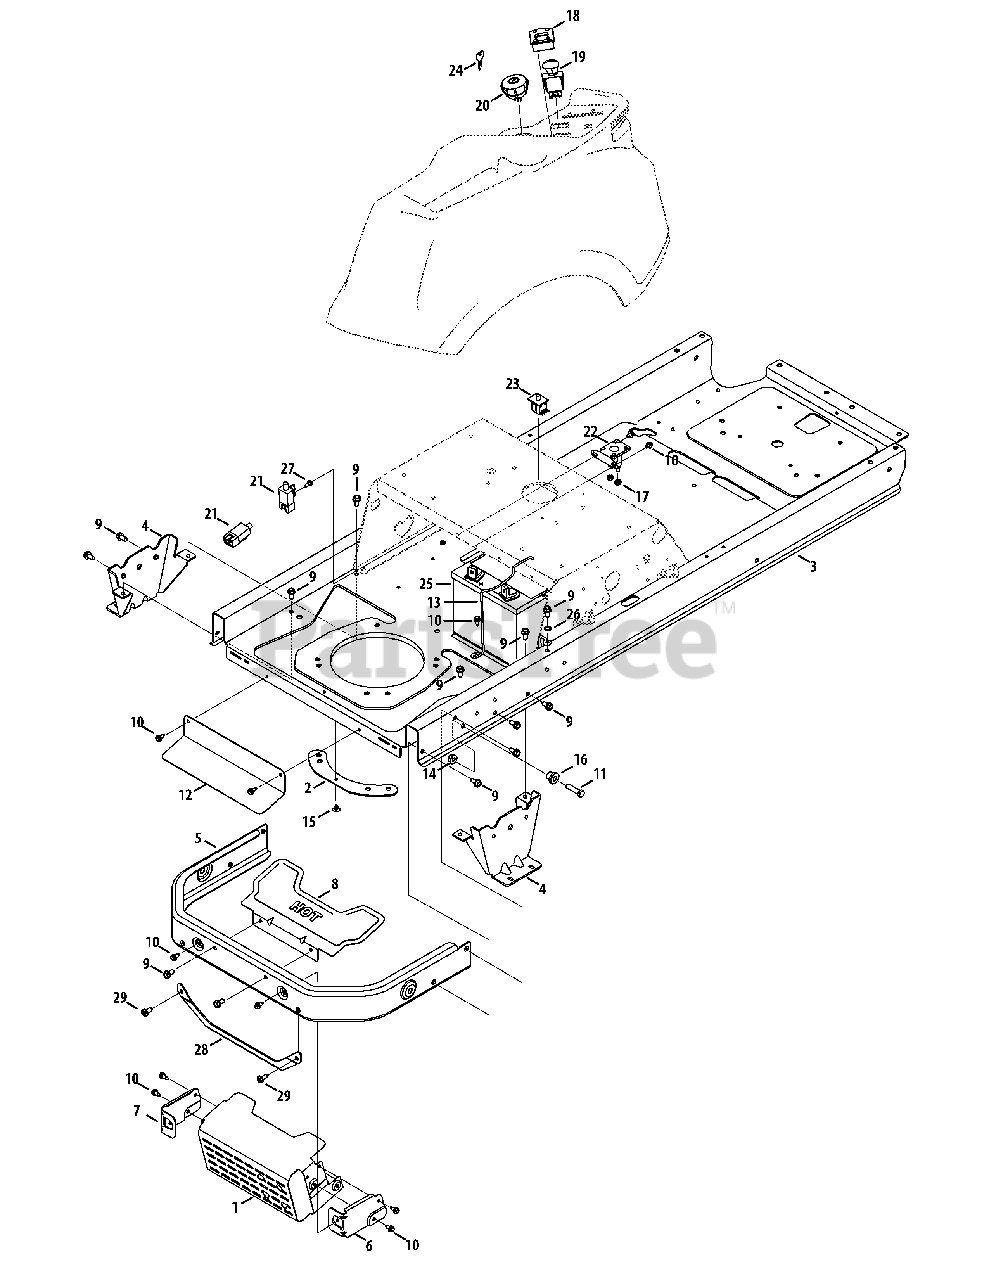 Cub Cadet Parts on the Frame & Electrical Diagram for RZT